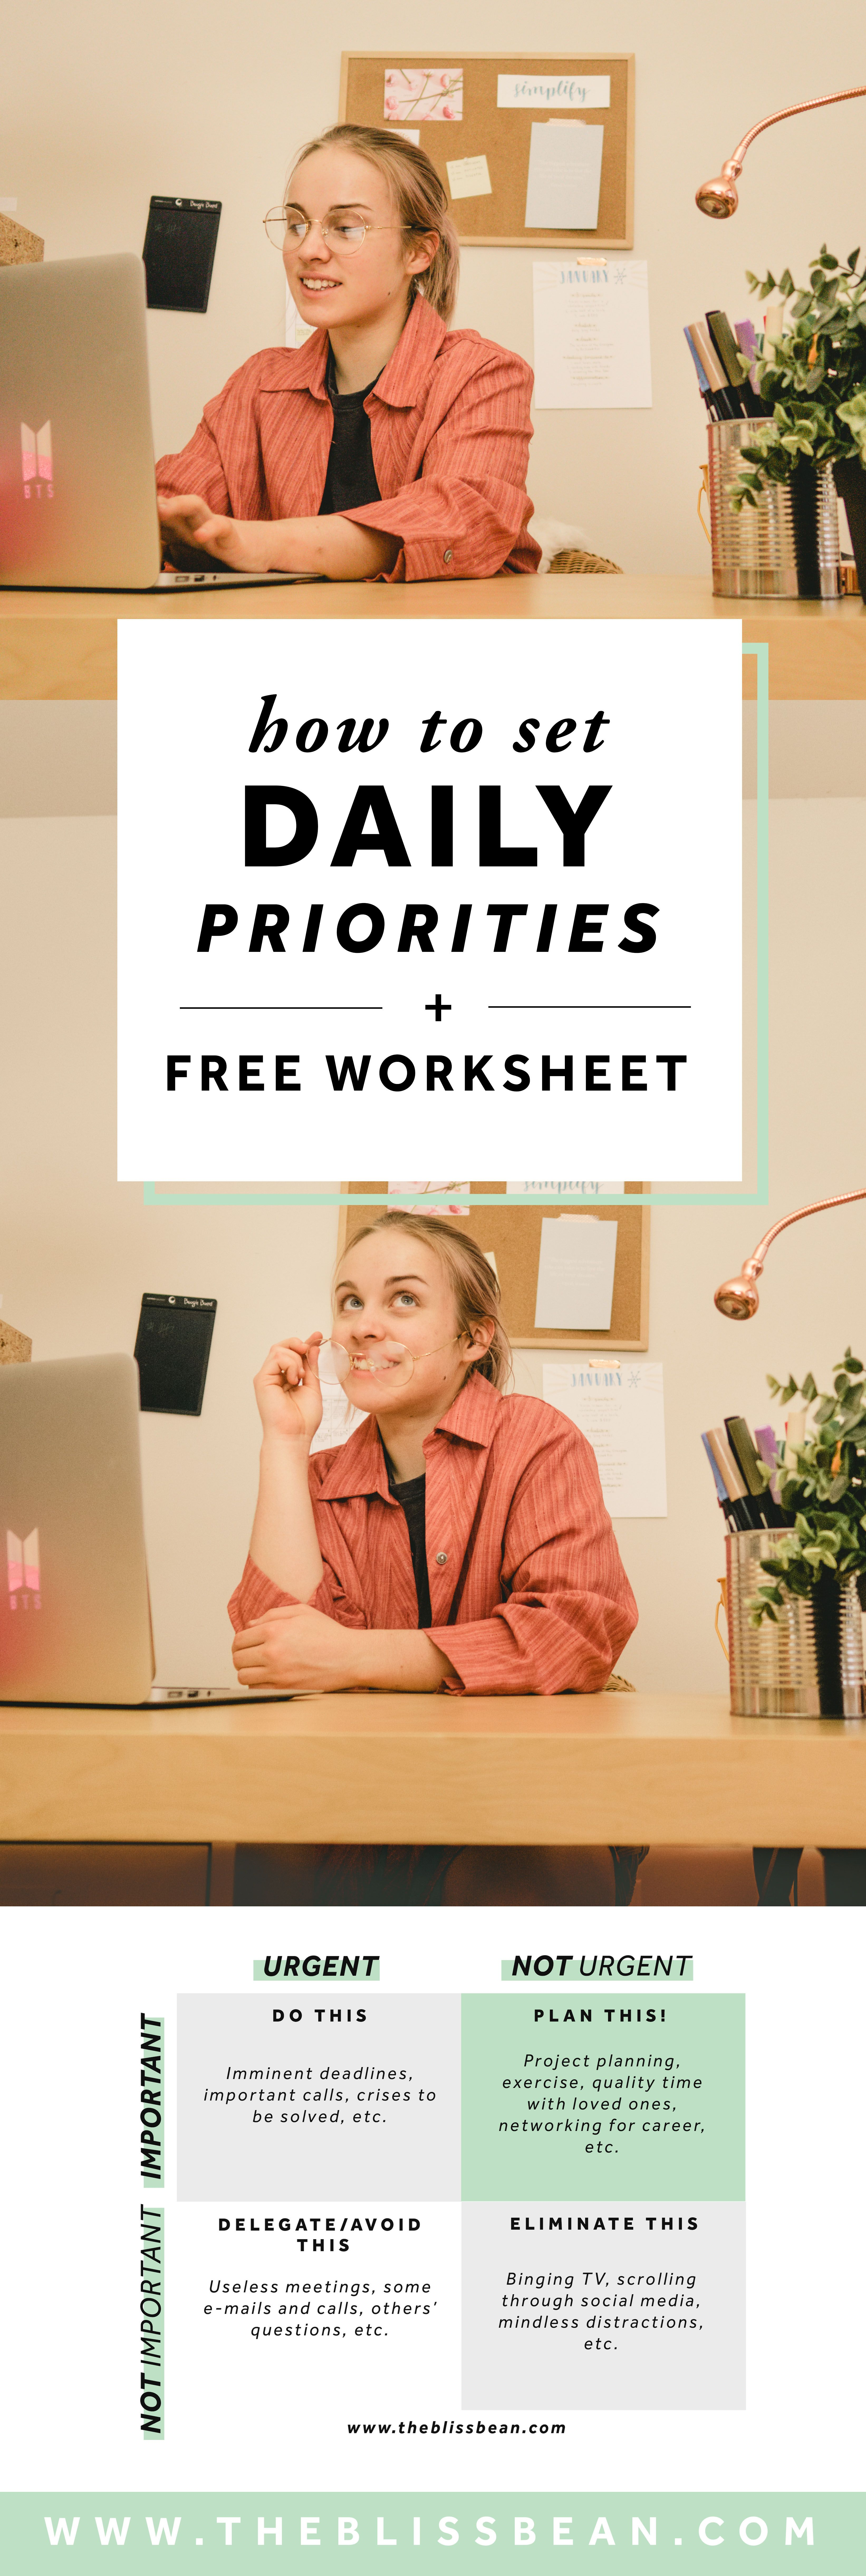 How To Set Daily Priorities A Free Worksheet